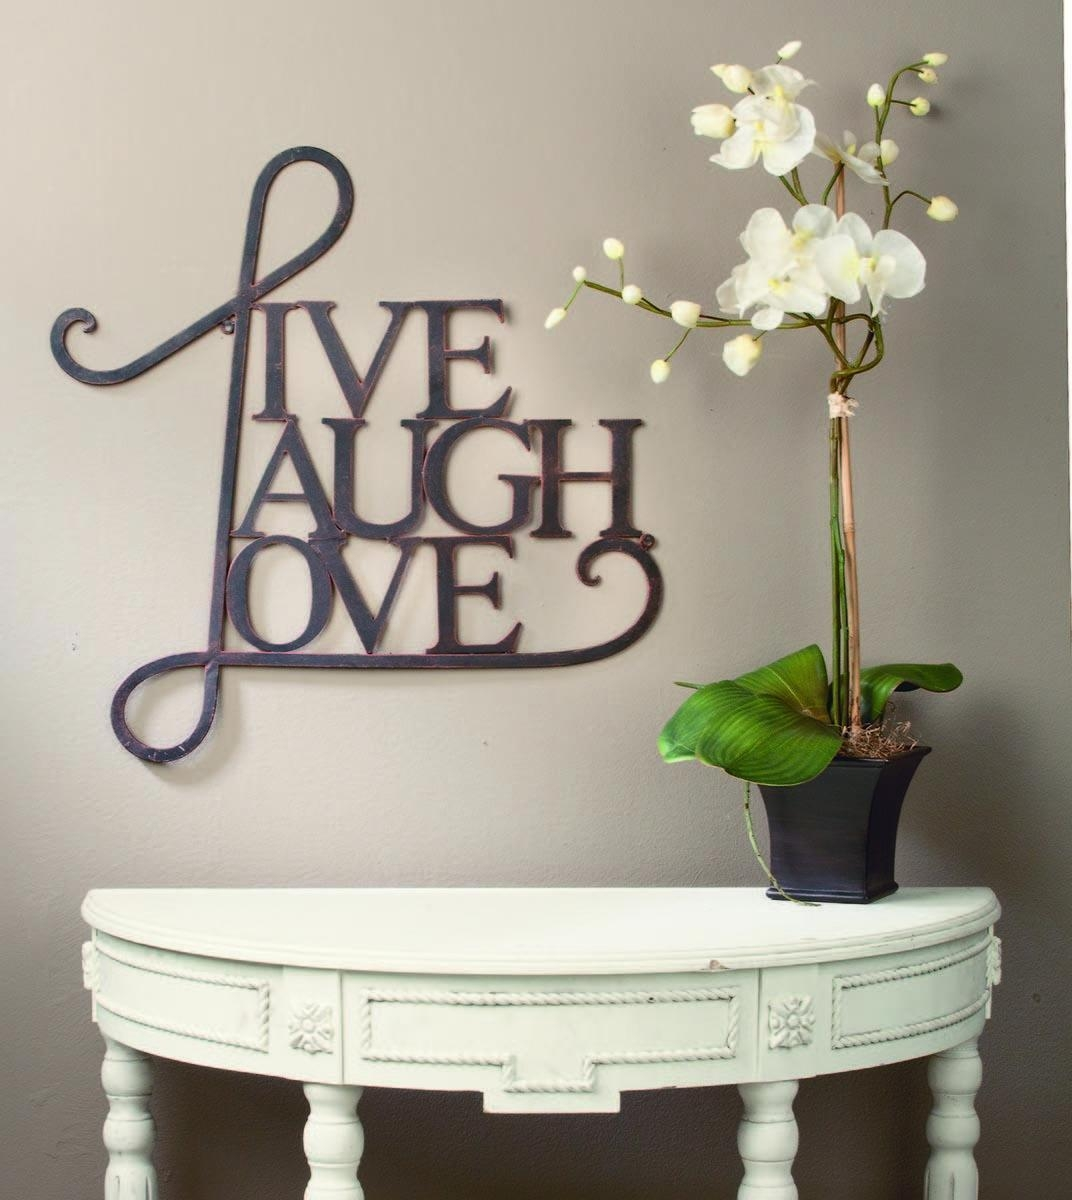 8 Best Images Of Love Wall Decor - Heart Shaped Frames, Live Laugh for Live Love Laugh Metal Wall Decor